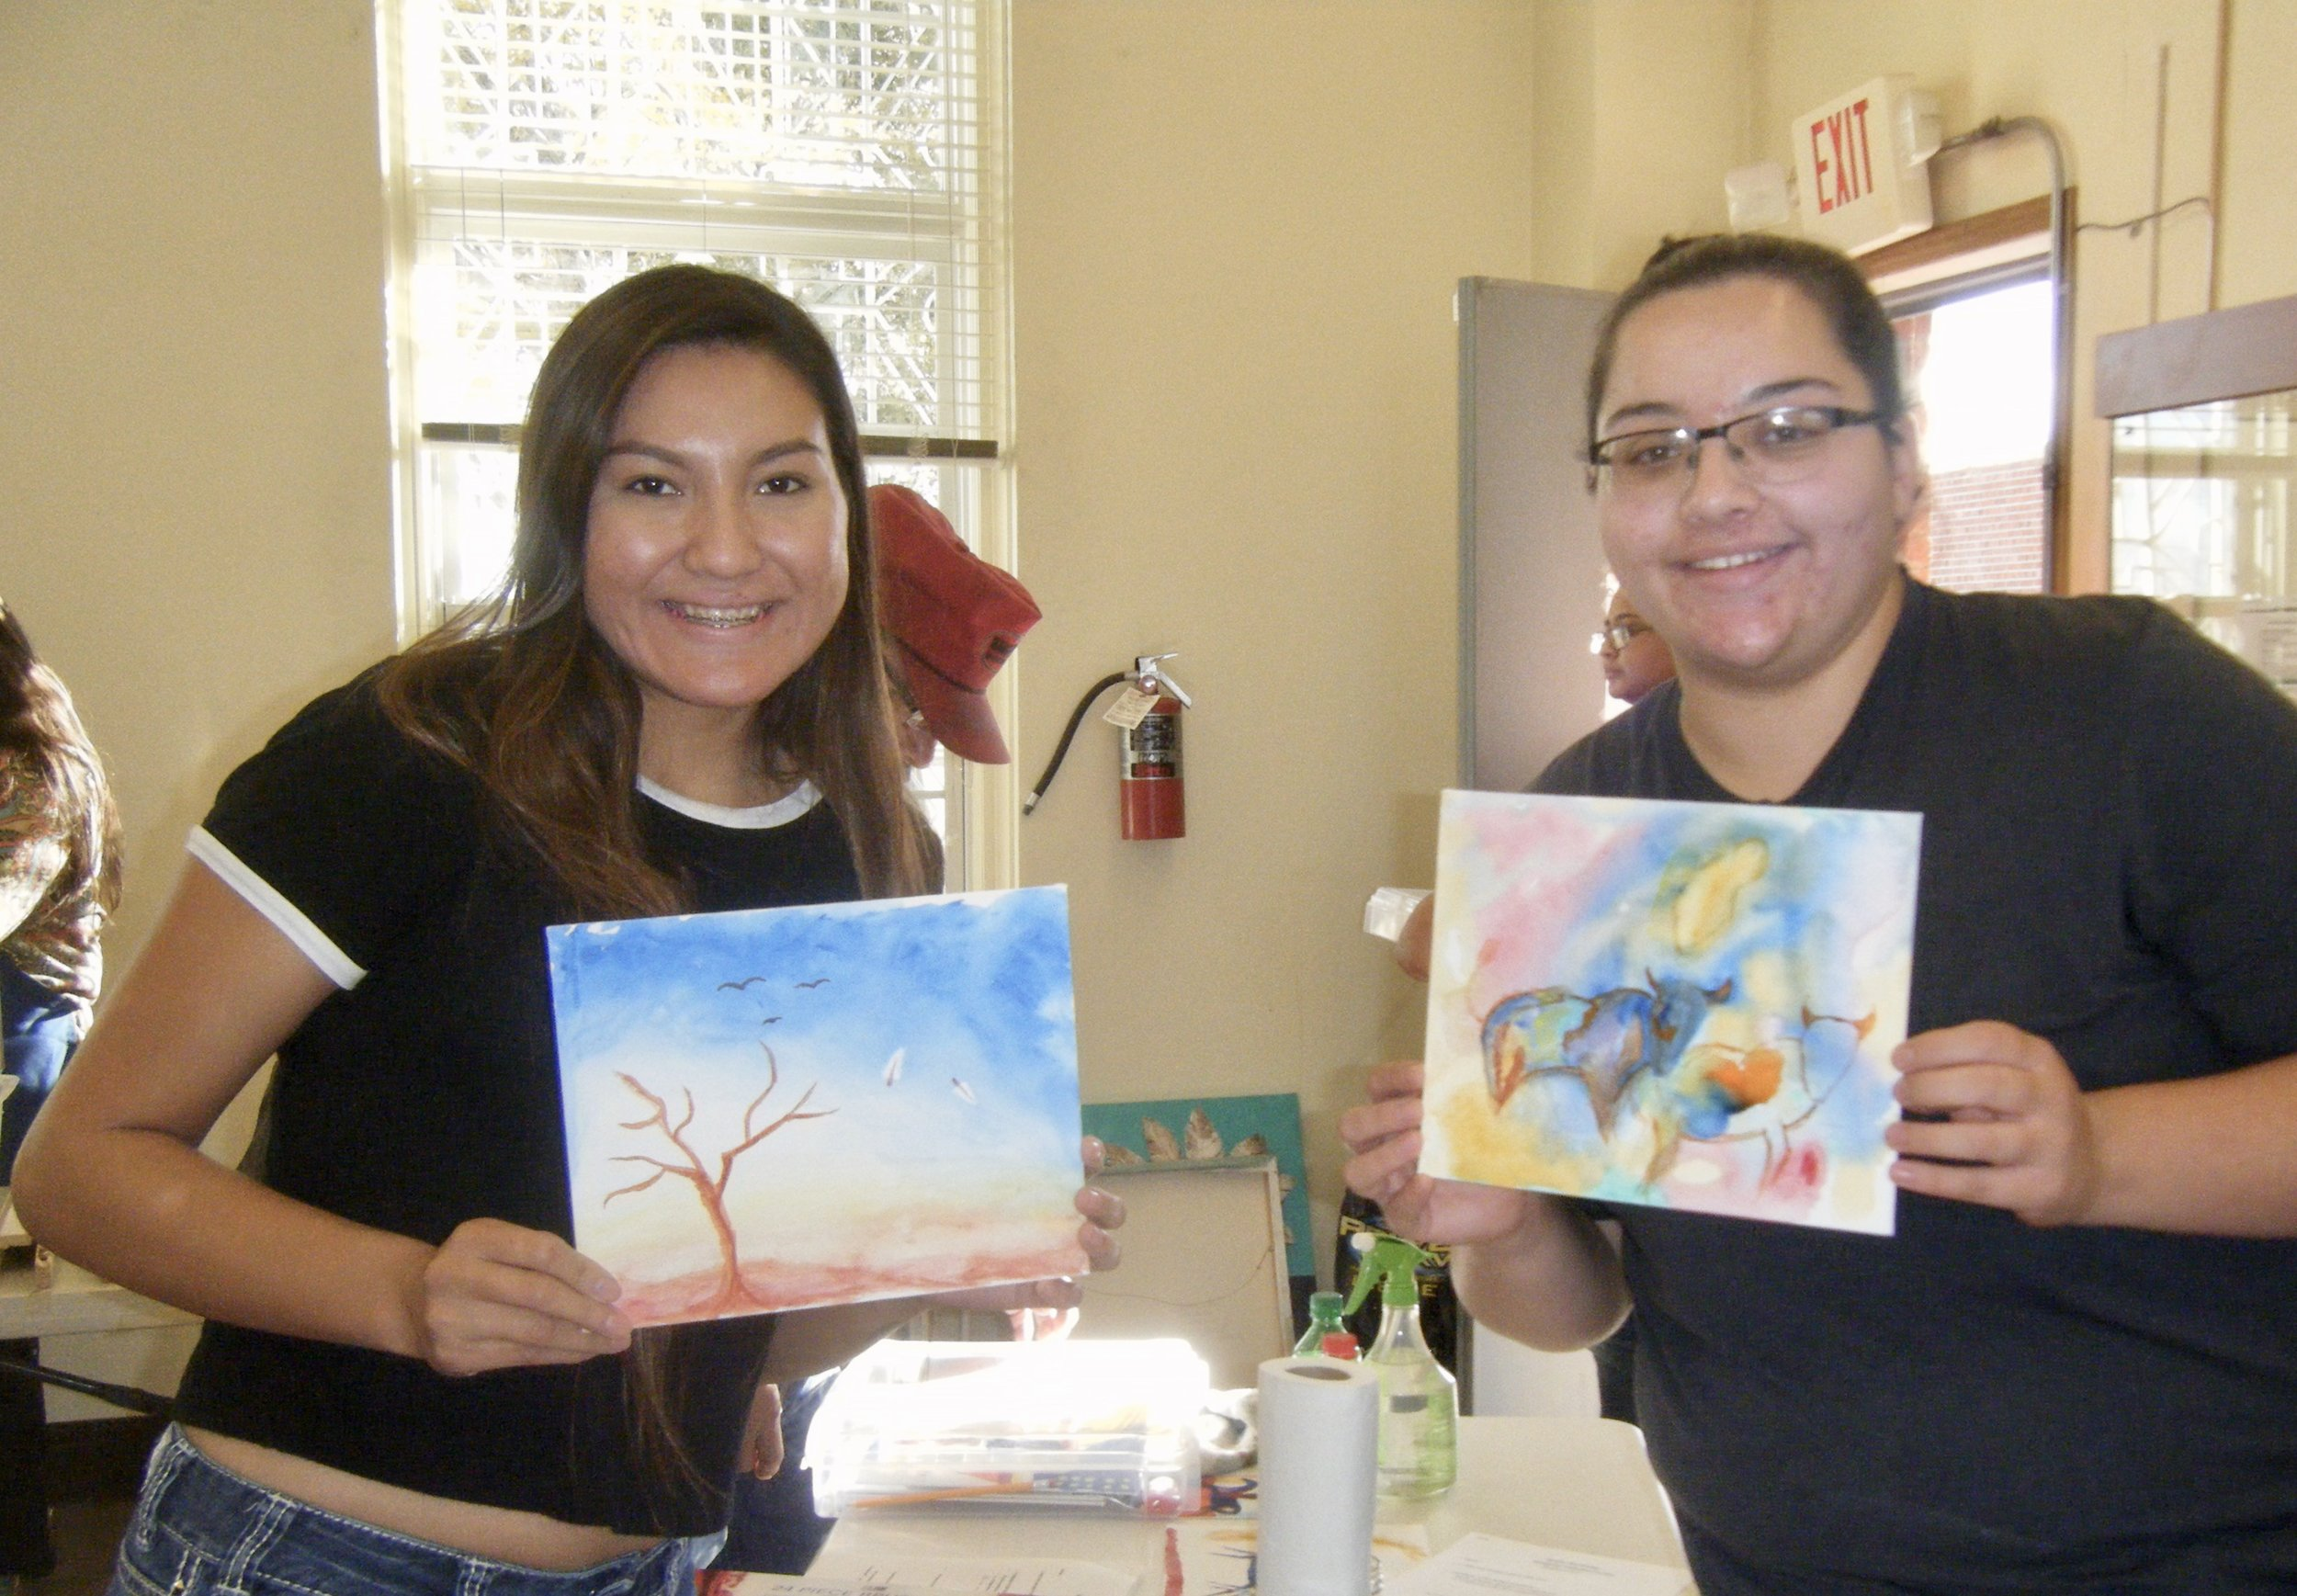 Raynell and Kimberlee show their works-in-progress during the Acrylic Painting Workshop.